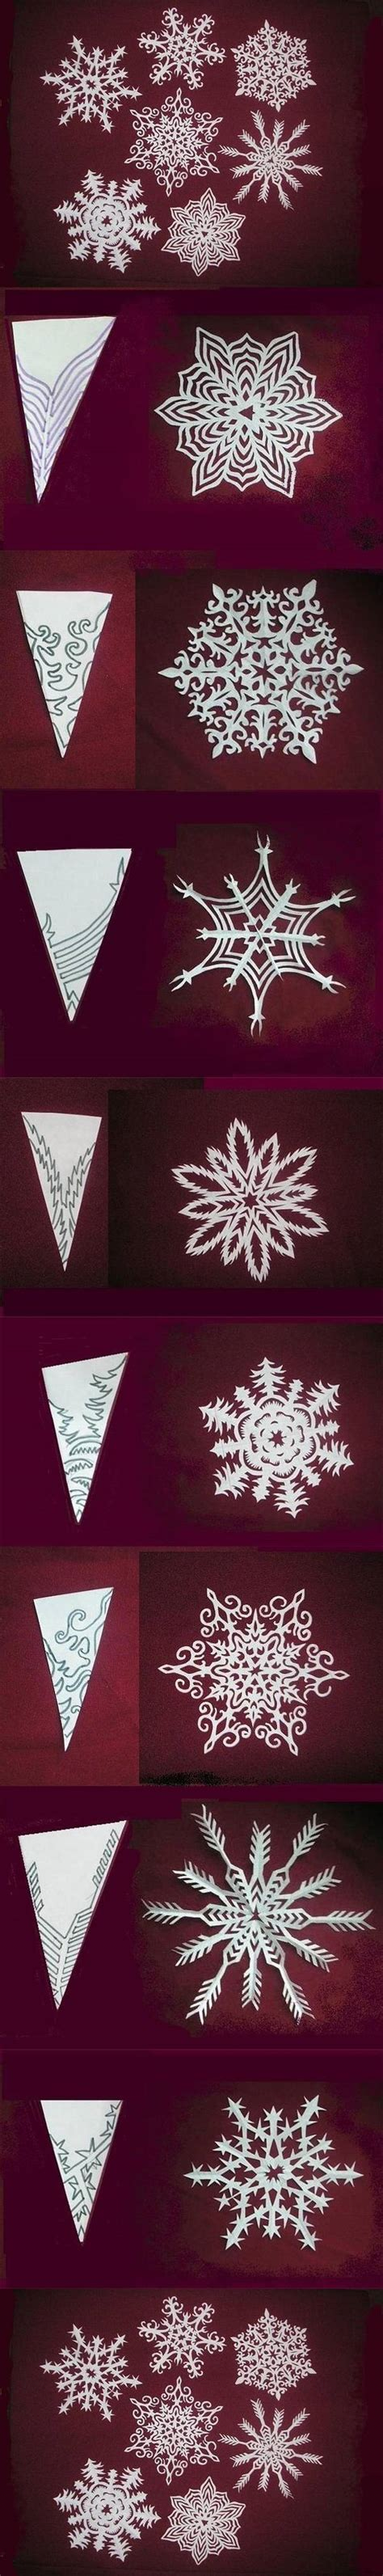 How To Make Pretty Paper Snowflakes - how to make beautiful snowflakes paper craft diy tutorial